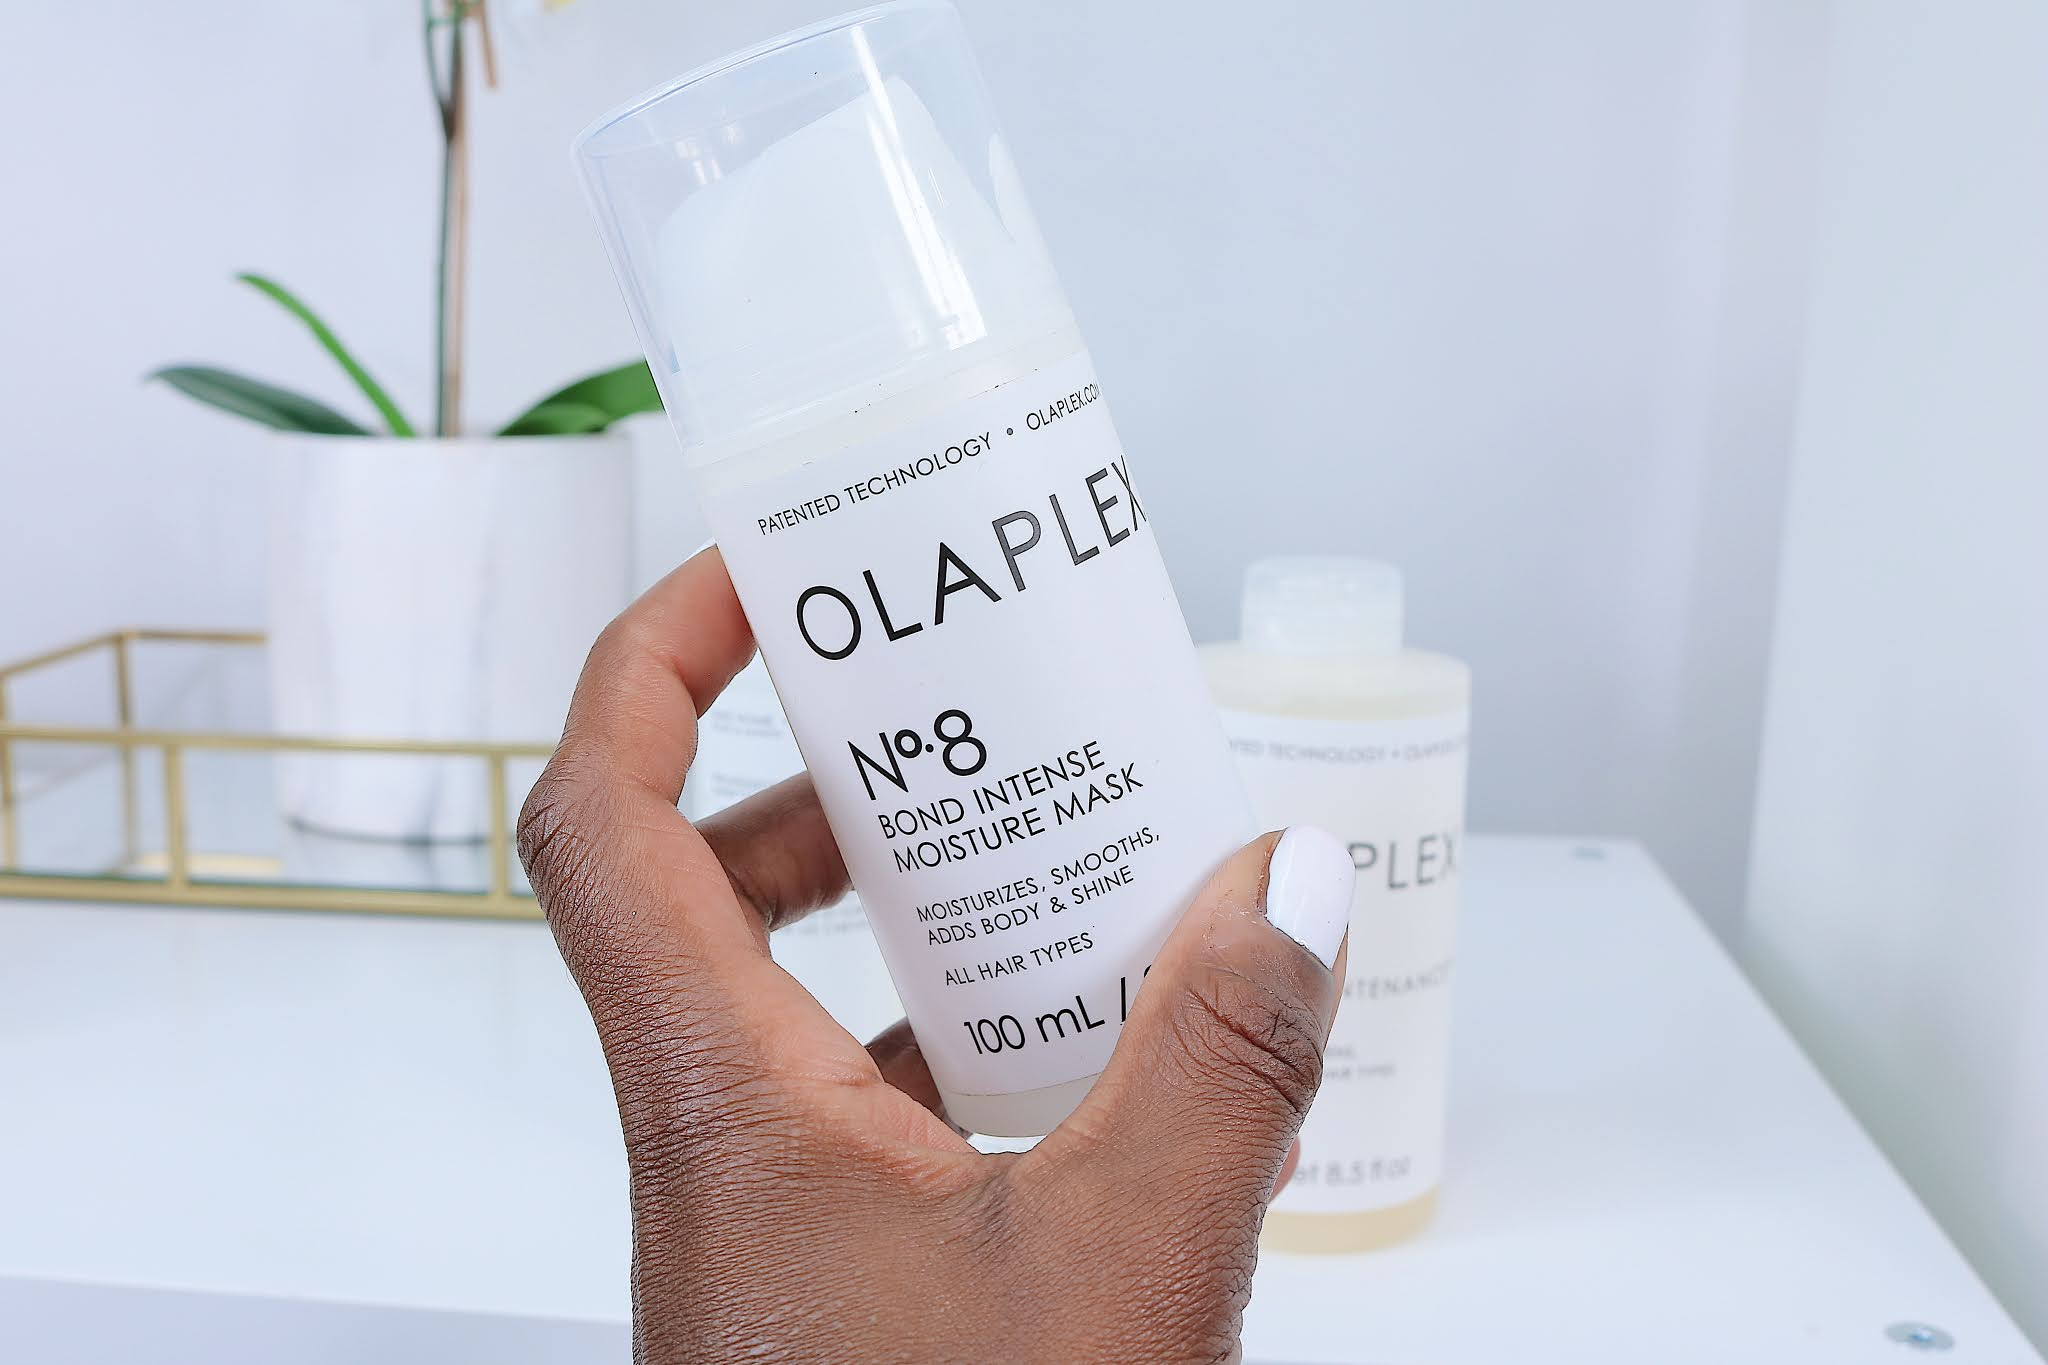 8 Things About OLAPLEX No.8 Bond Intense Moisture Mask You Didn't Know! | www.HairliciousInc.com